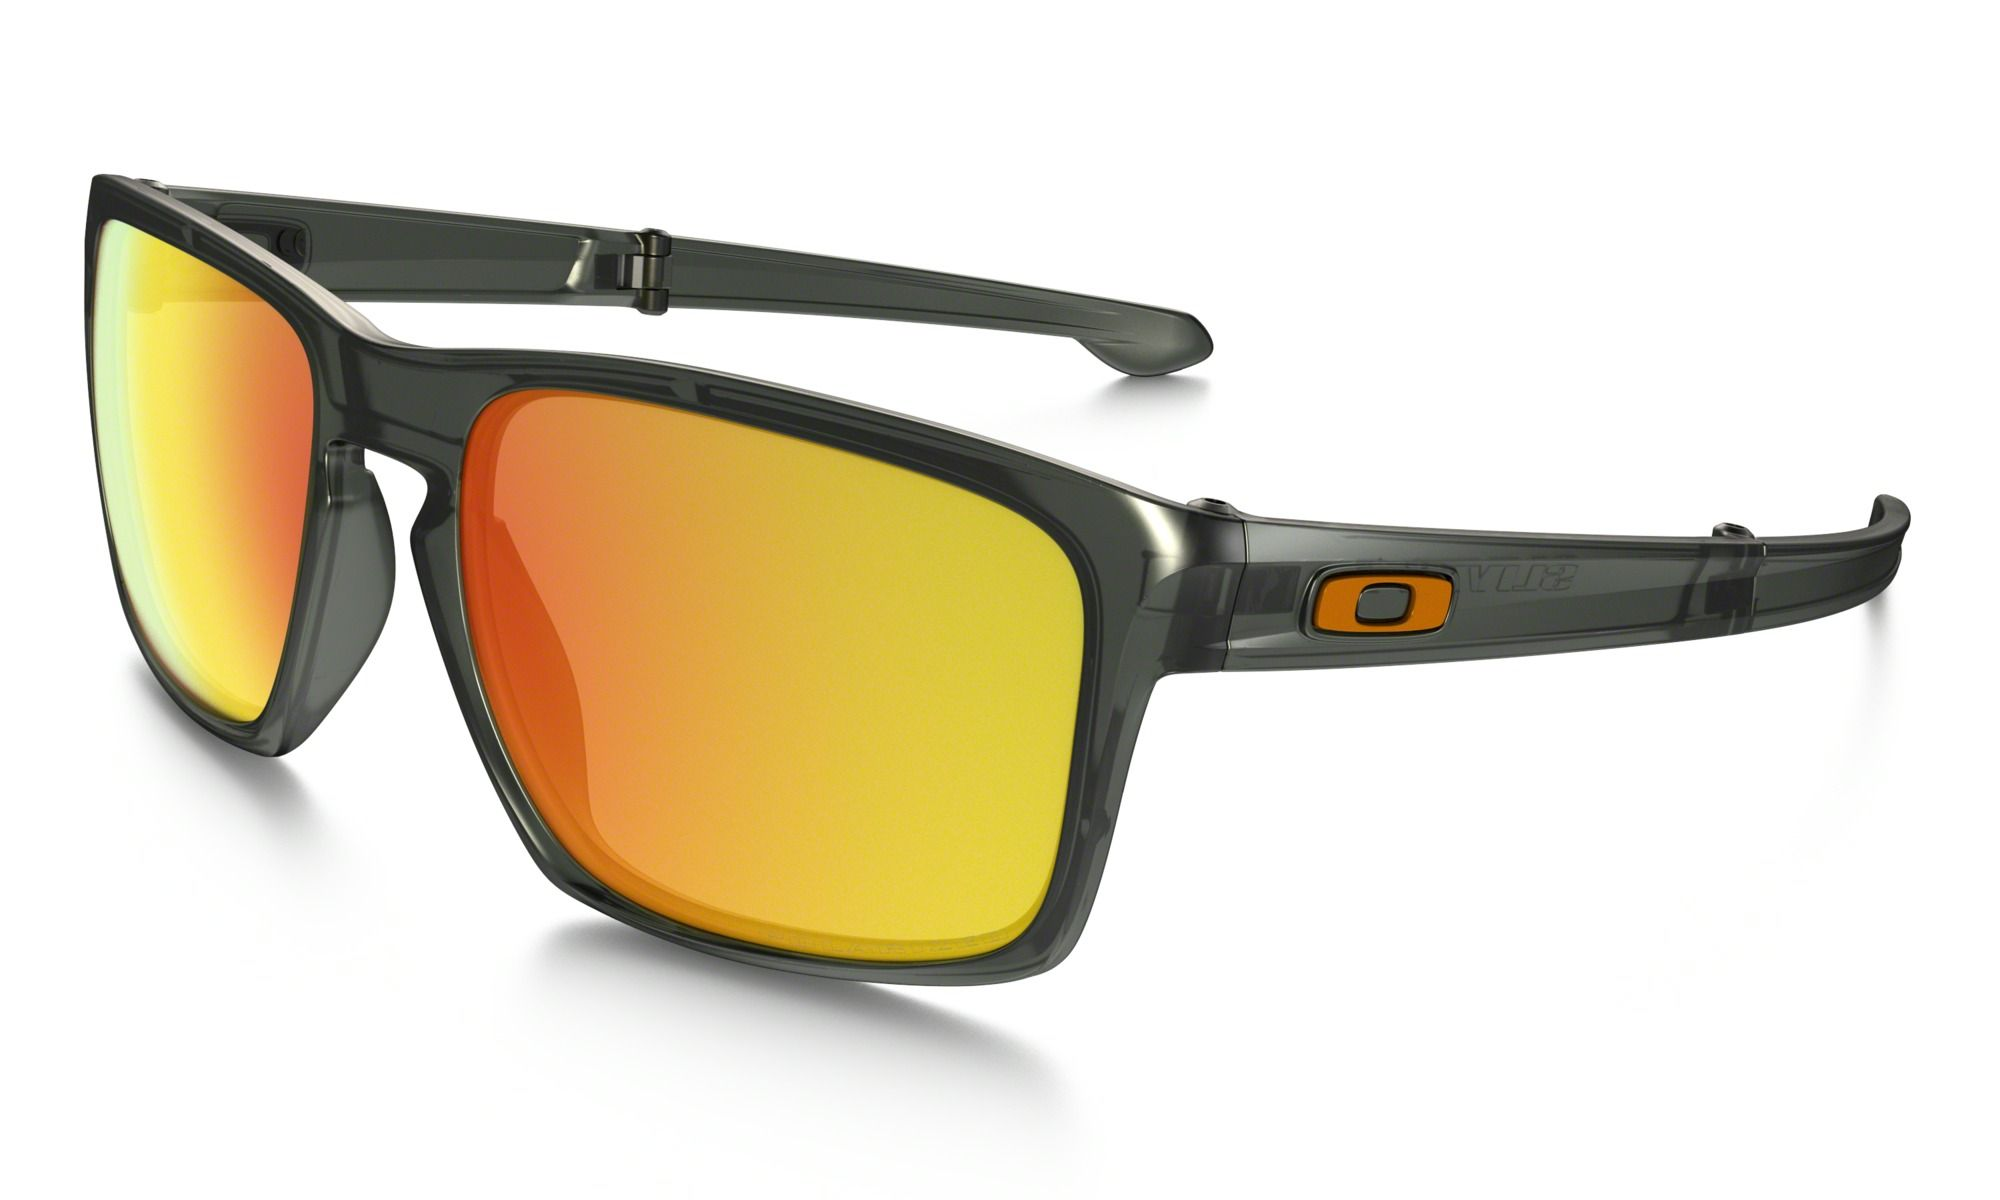 Oakley Sliver F Olive Ink with Fire Iridium (With images